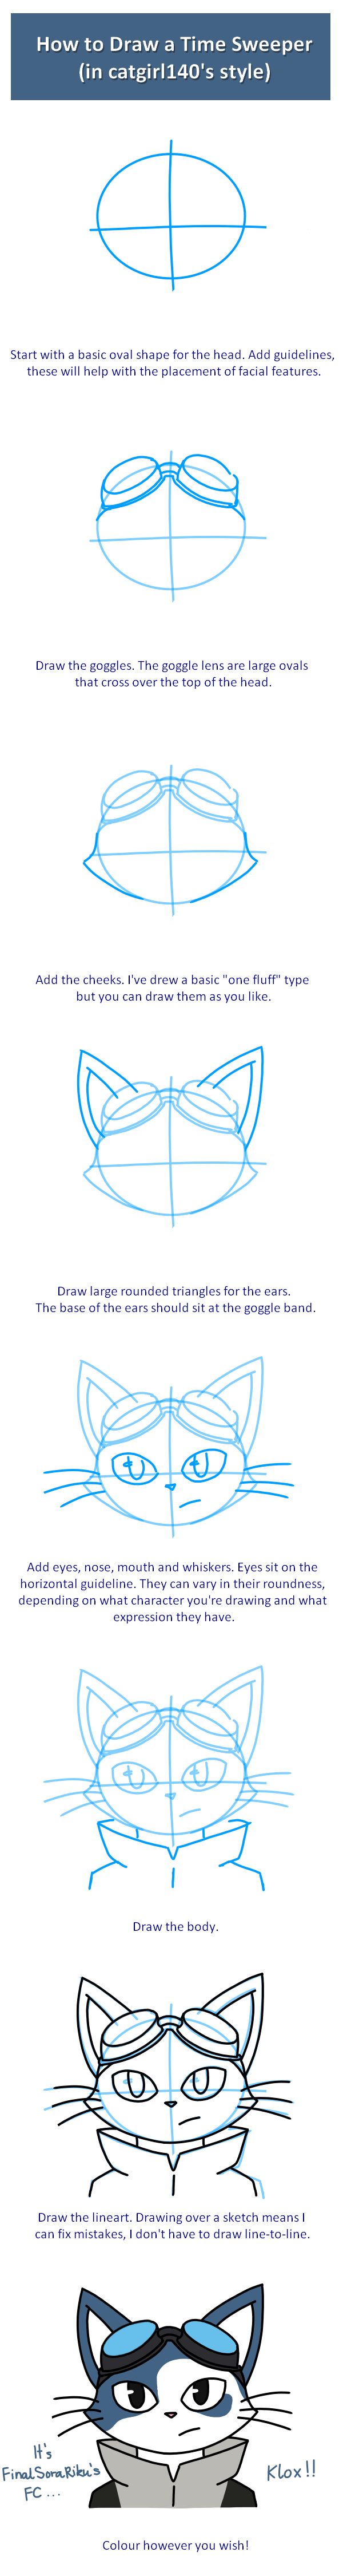 TUTORIAL How to Draw a Time Sweeper by catgirl140